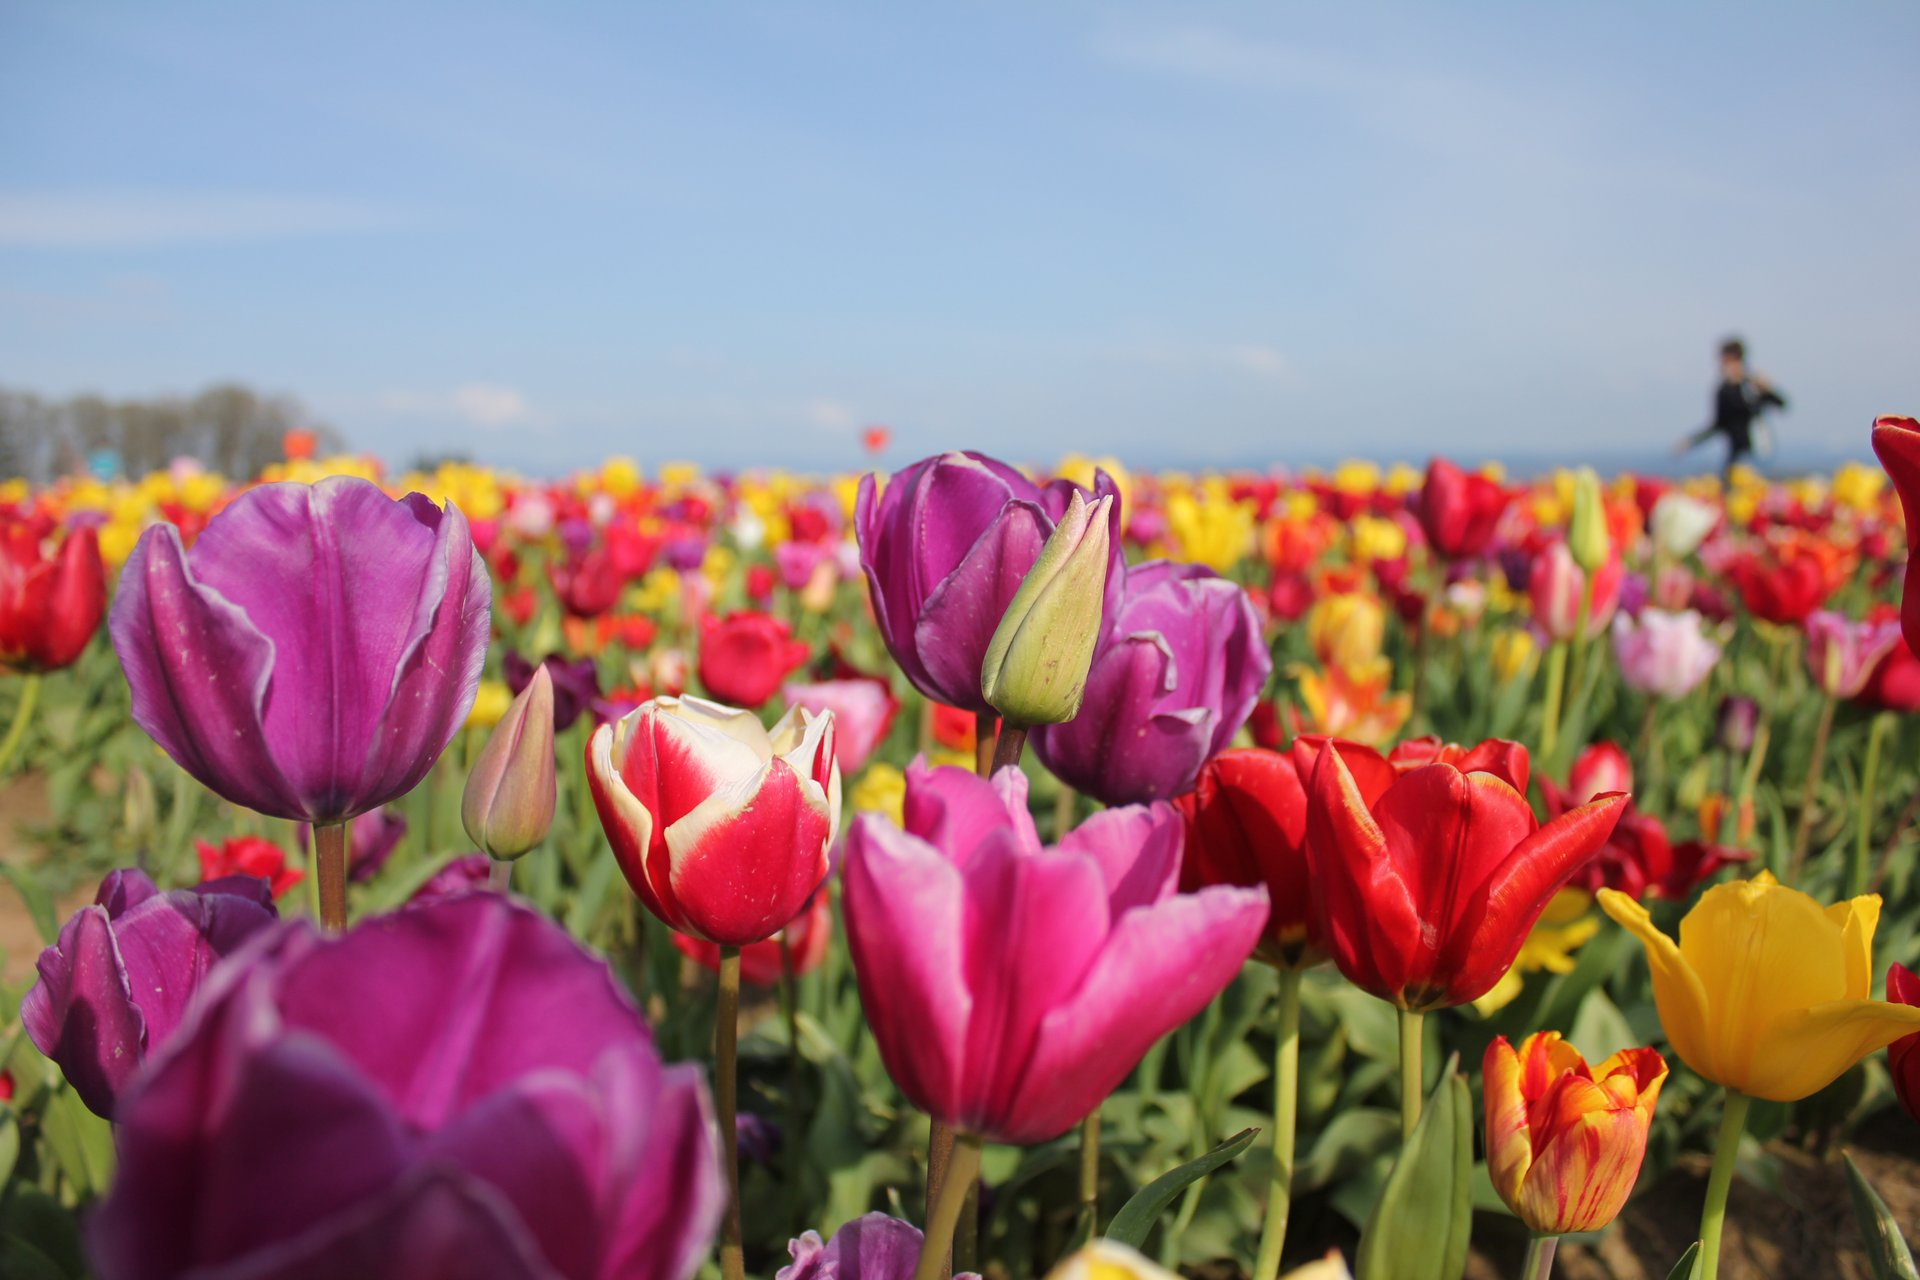 Wooden Shoe Tulip Festival 2020.Wooden Shoe Tulip Fest 2020 In Portland Dates Map